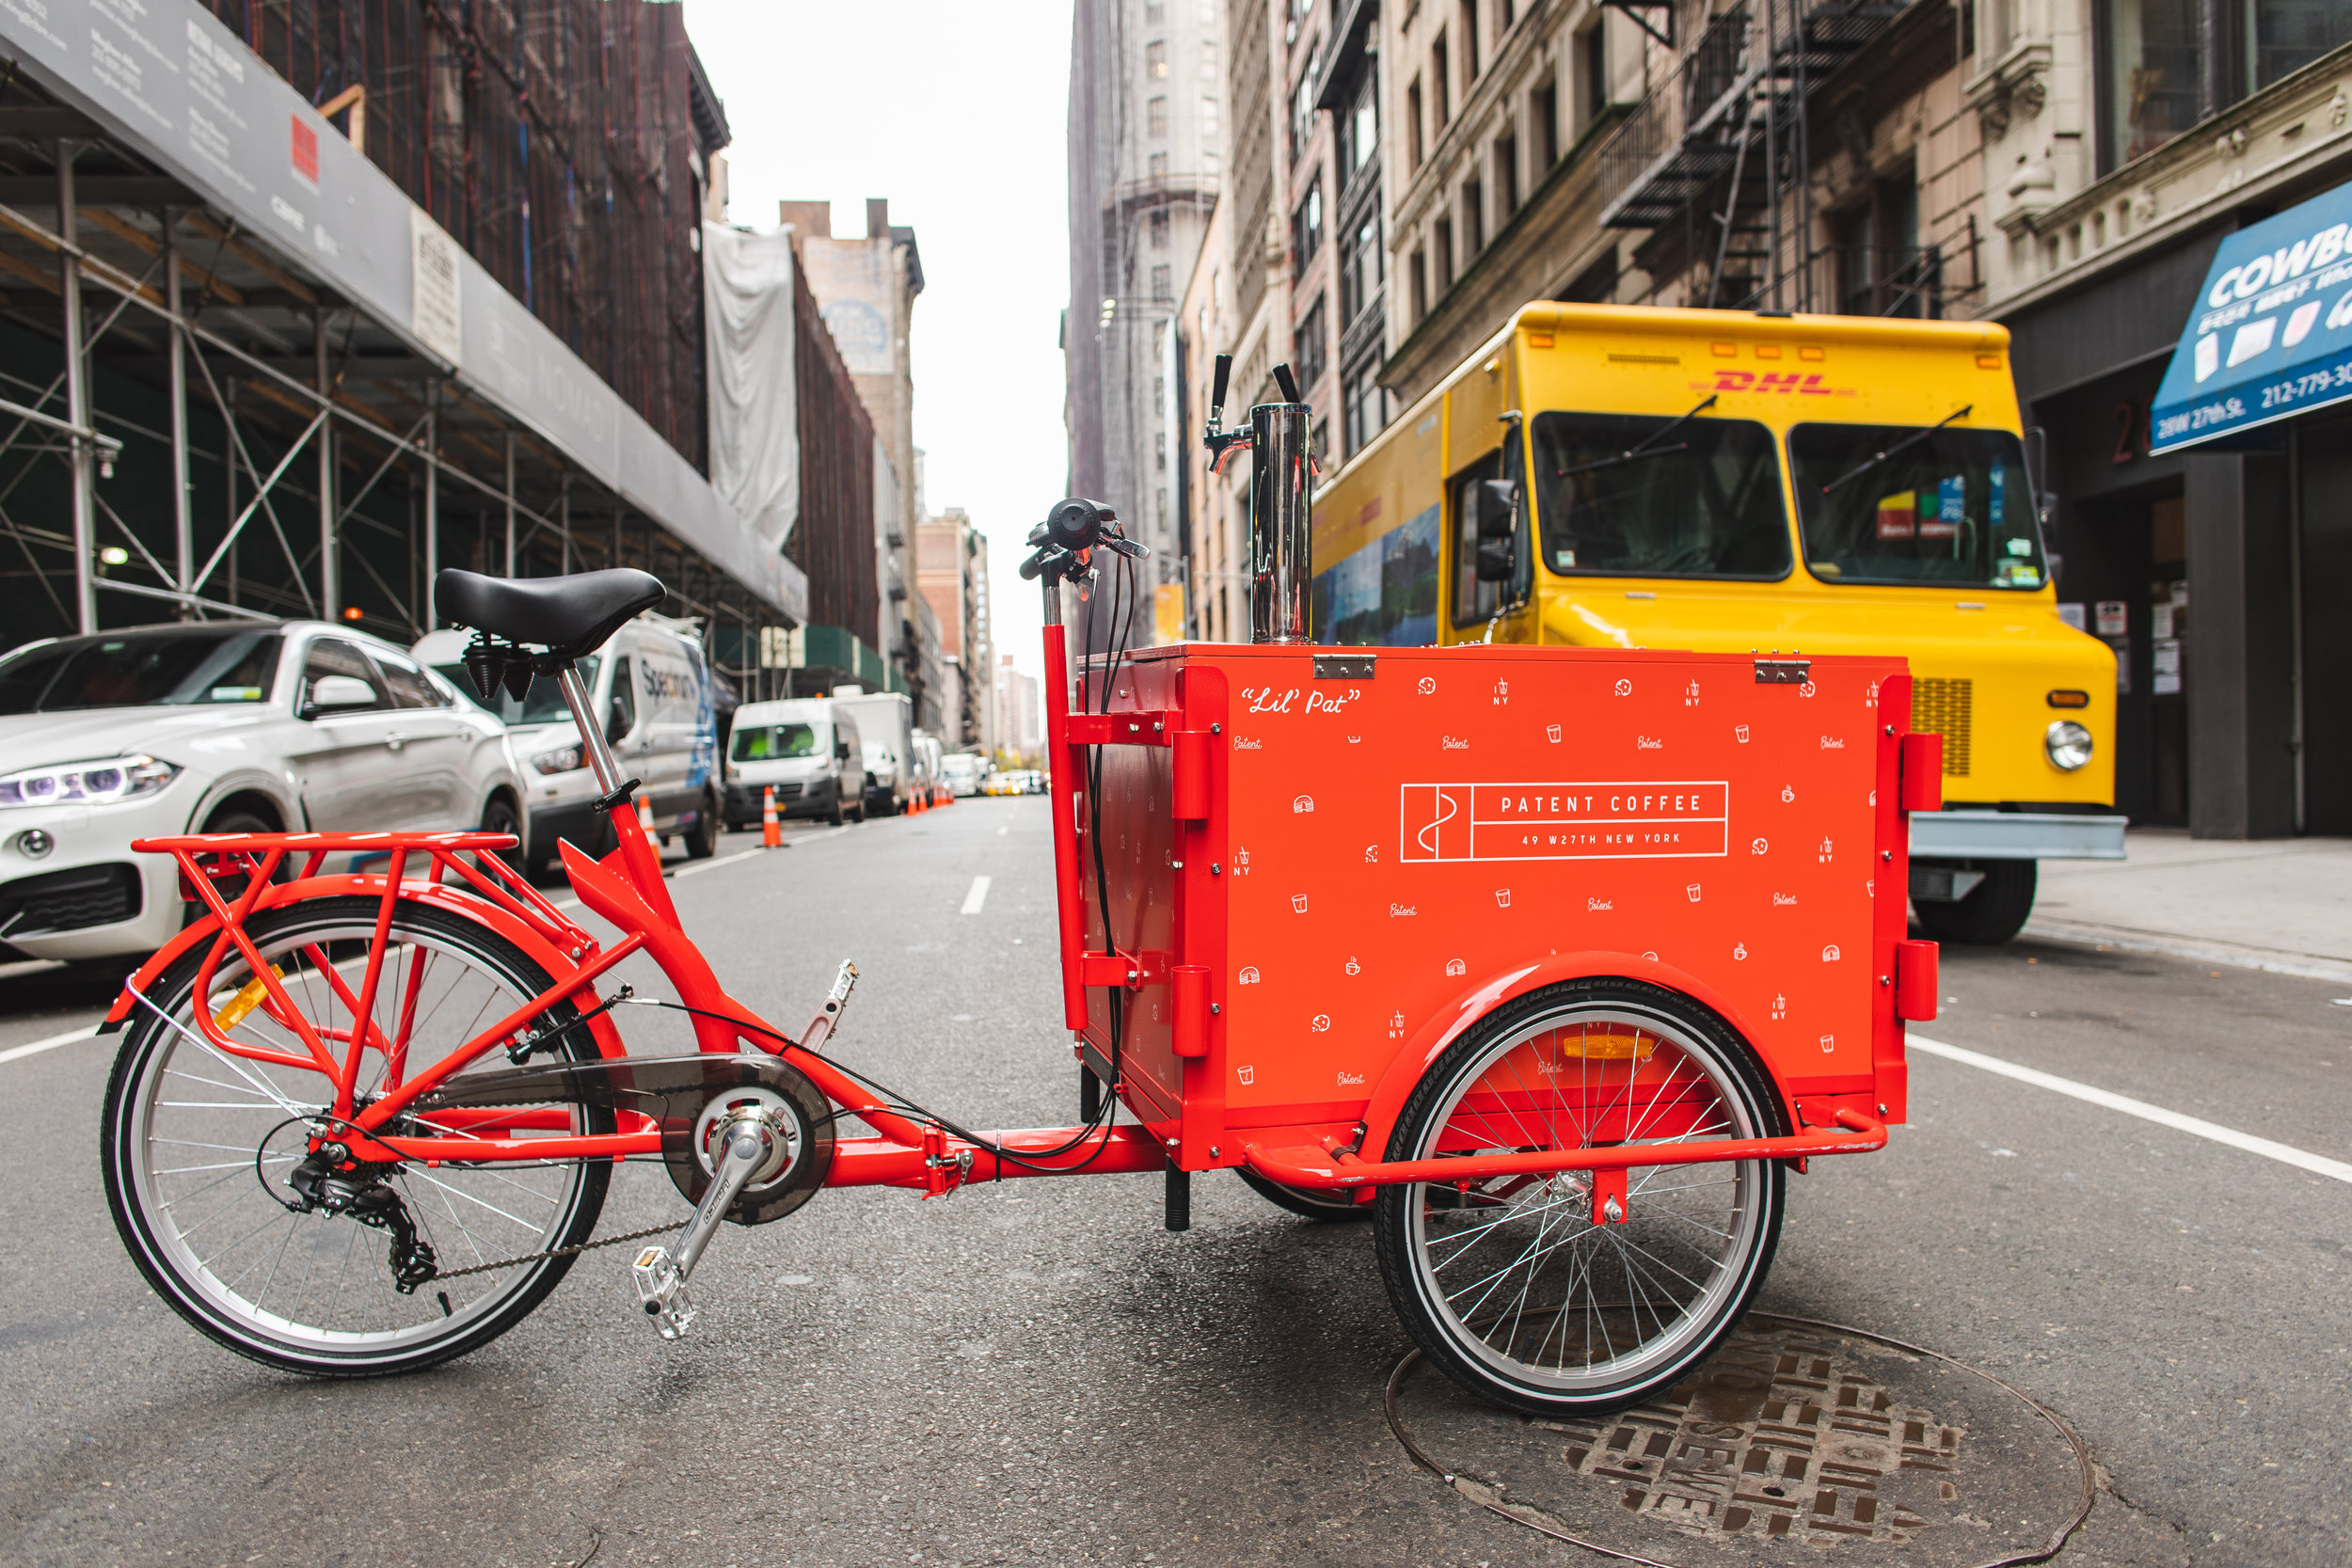 Pssst - I'm a bike too. Take me to the office, park or event. I'm mobile and love to roll :)